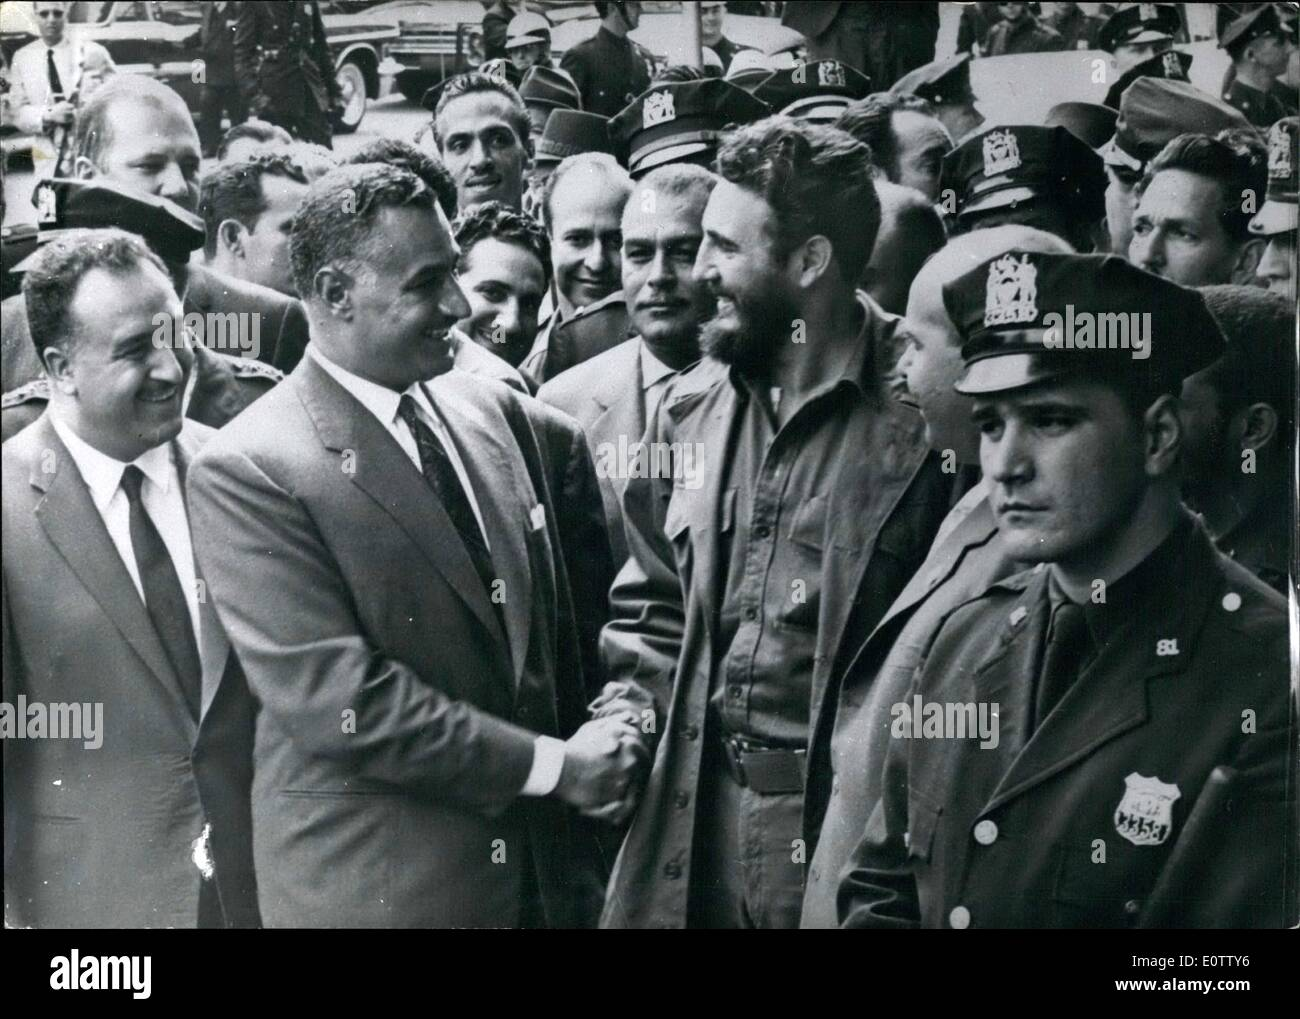 Sep. 09, 1960 - Nasser visits Castro: The President of the United Arab Republic, Gamal Abdel Nasser who is in New - Stock Image